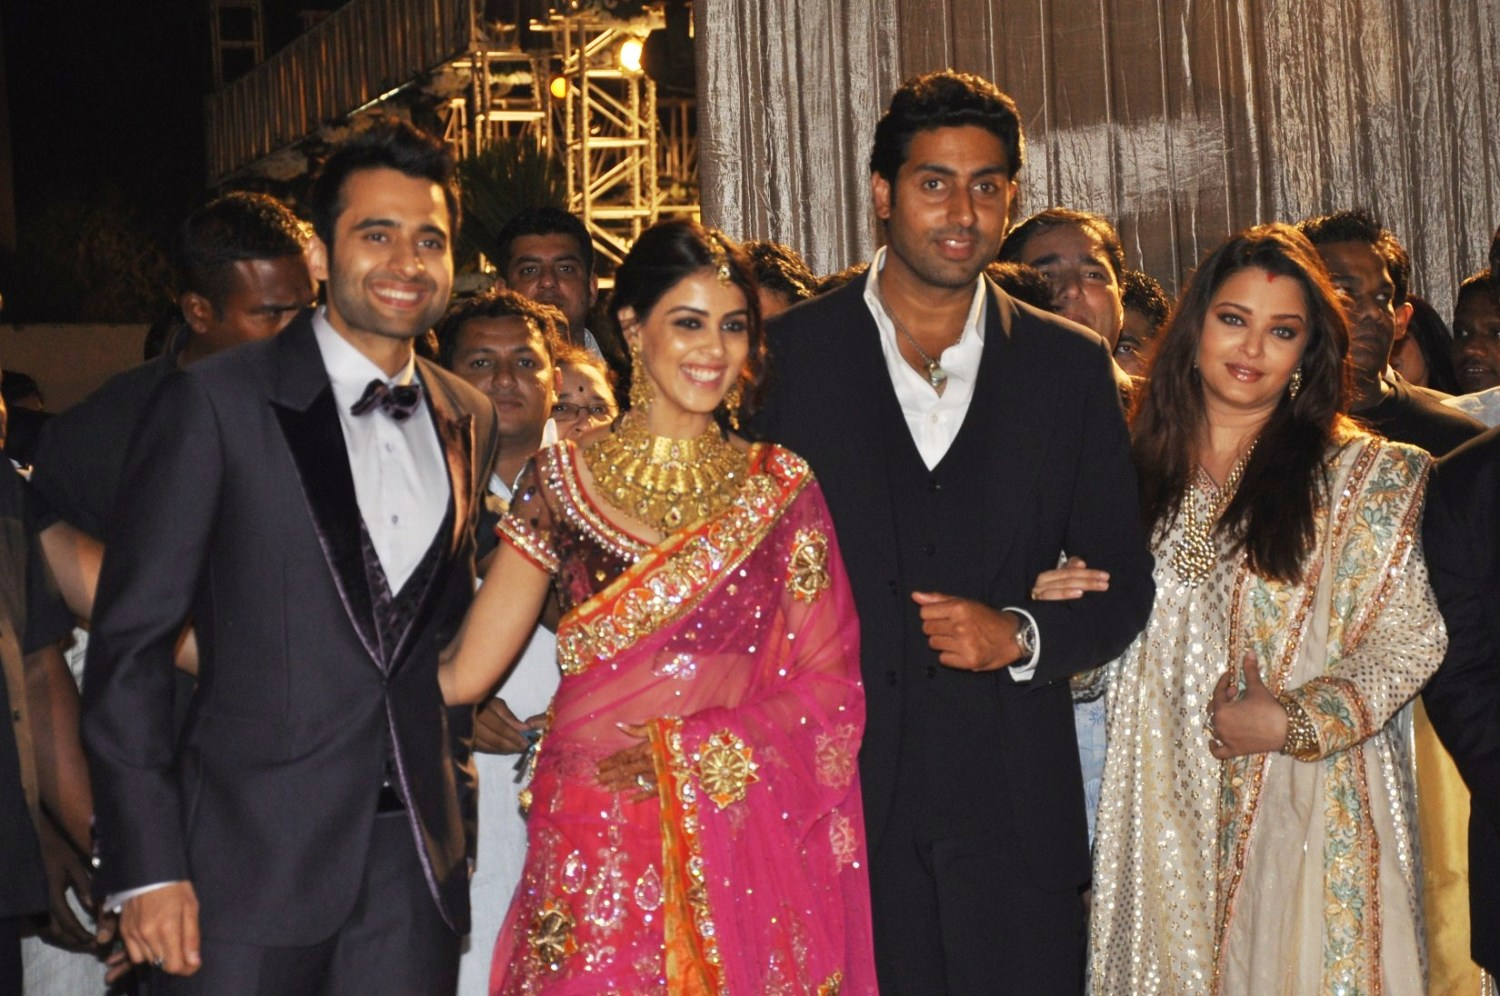 Jackky Bhagnani Genelia Abhishek Bachchan With Aishwarya Rai At The Wedding Reception Of Dheeraj Deshmukh And Honey 1